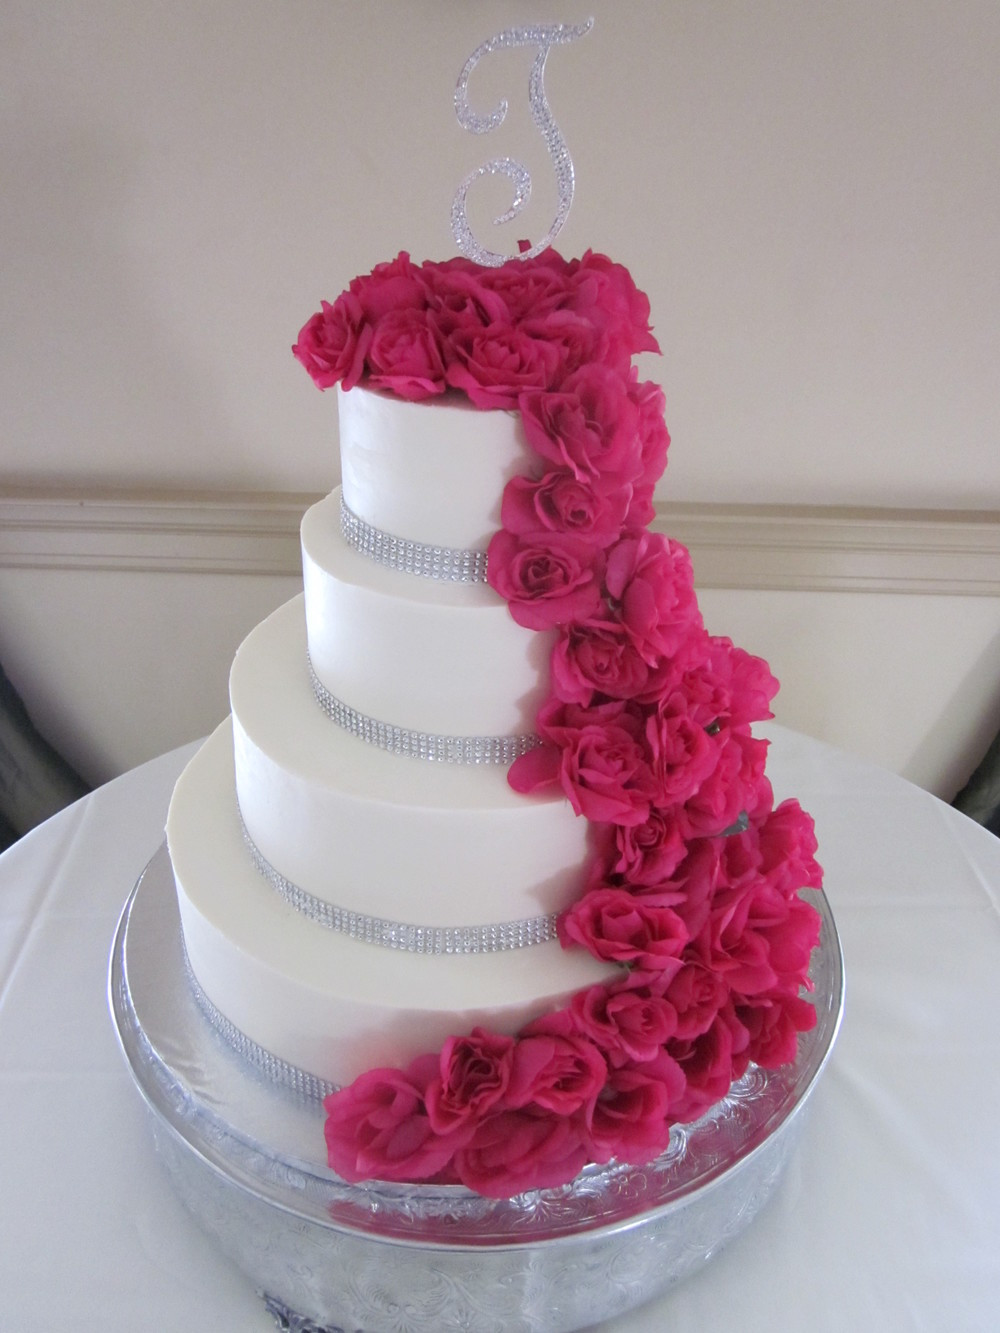 Wedding Cakes Delaware 20 Ideas for Cascading Roses with Rhinestones Wedding Cake